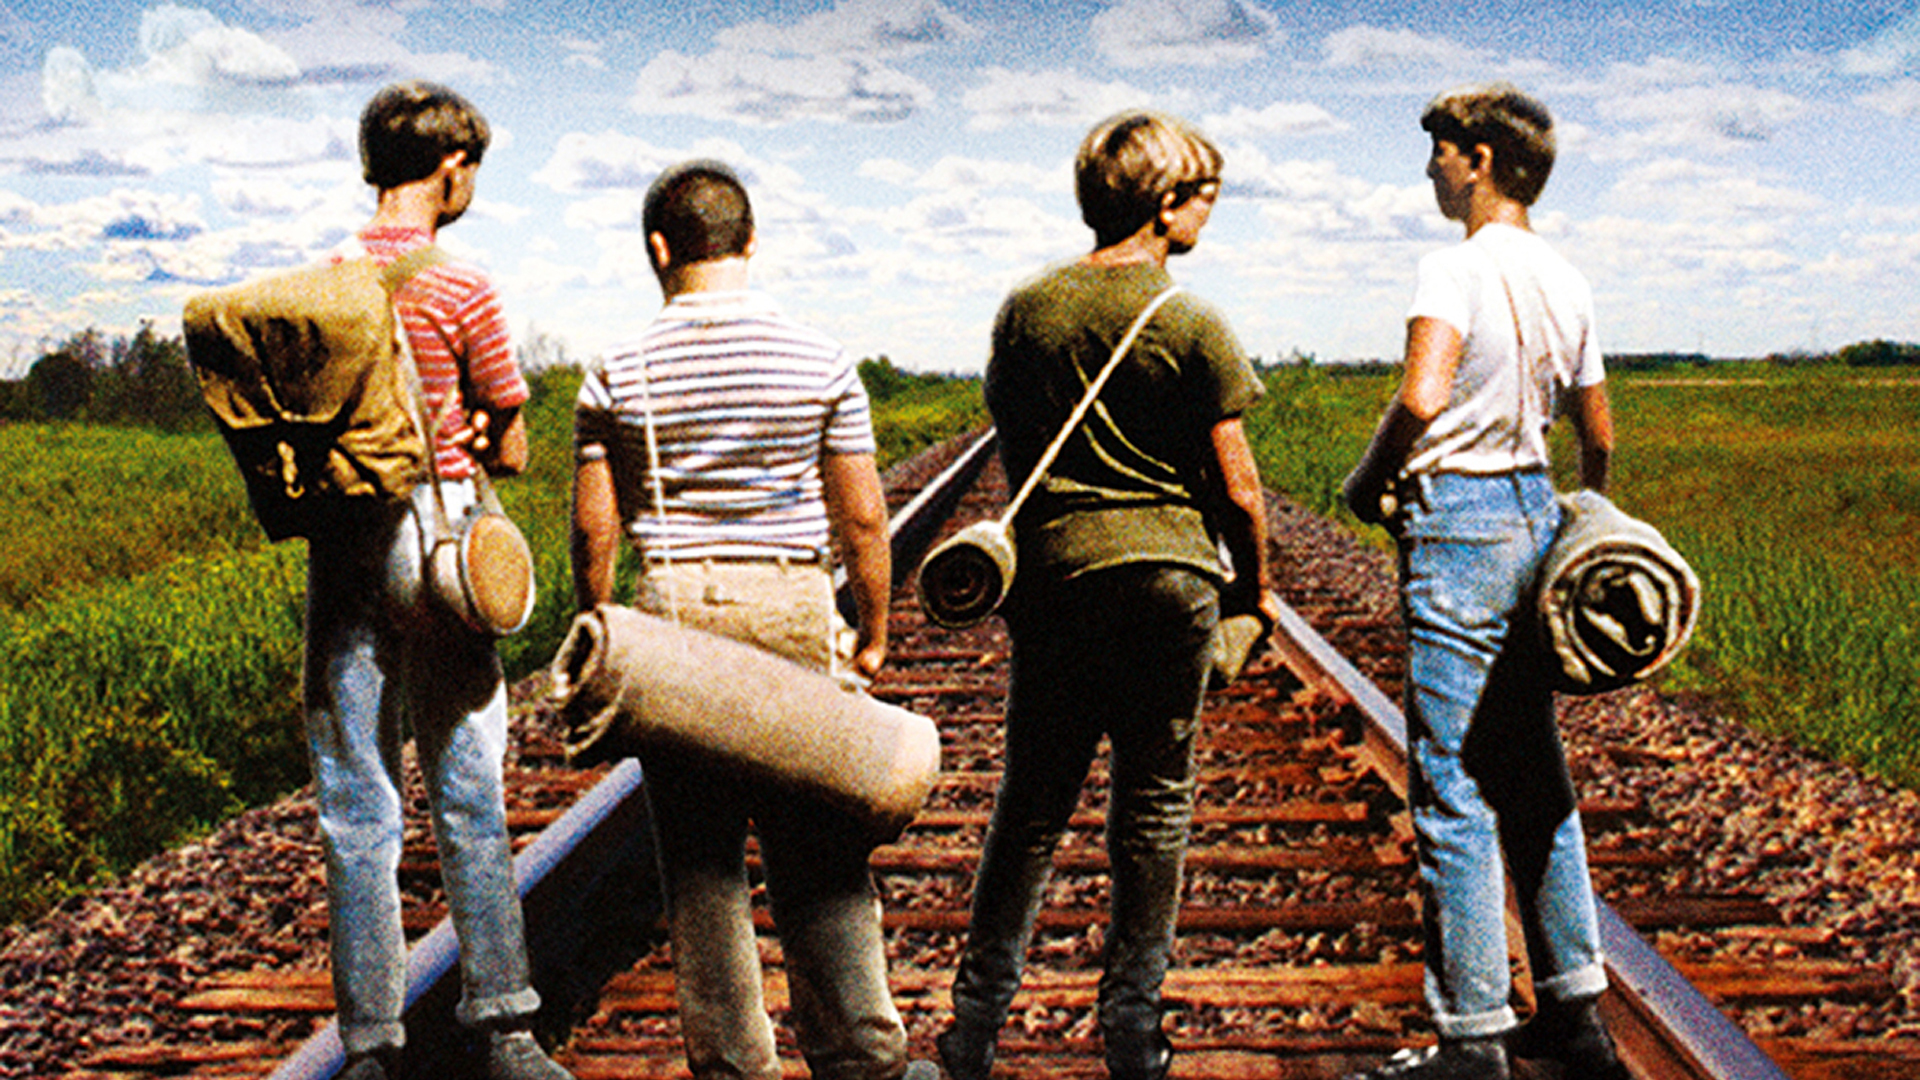 Stand by me: my favorite movie of all time